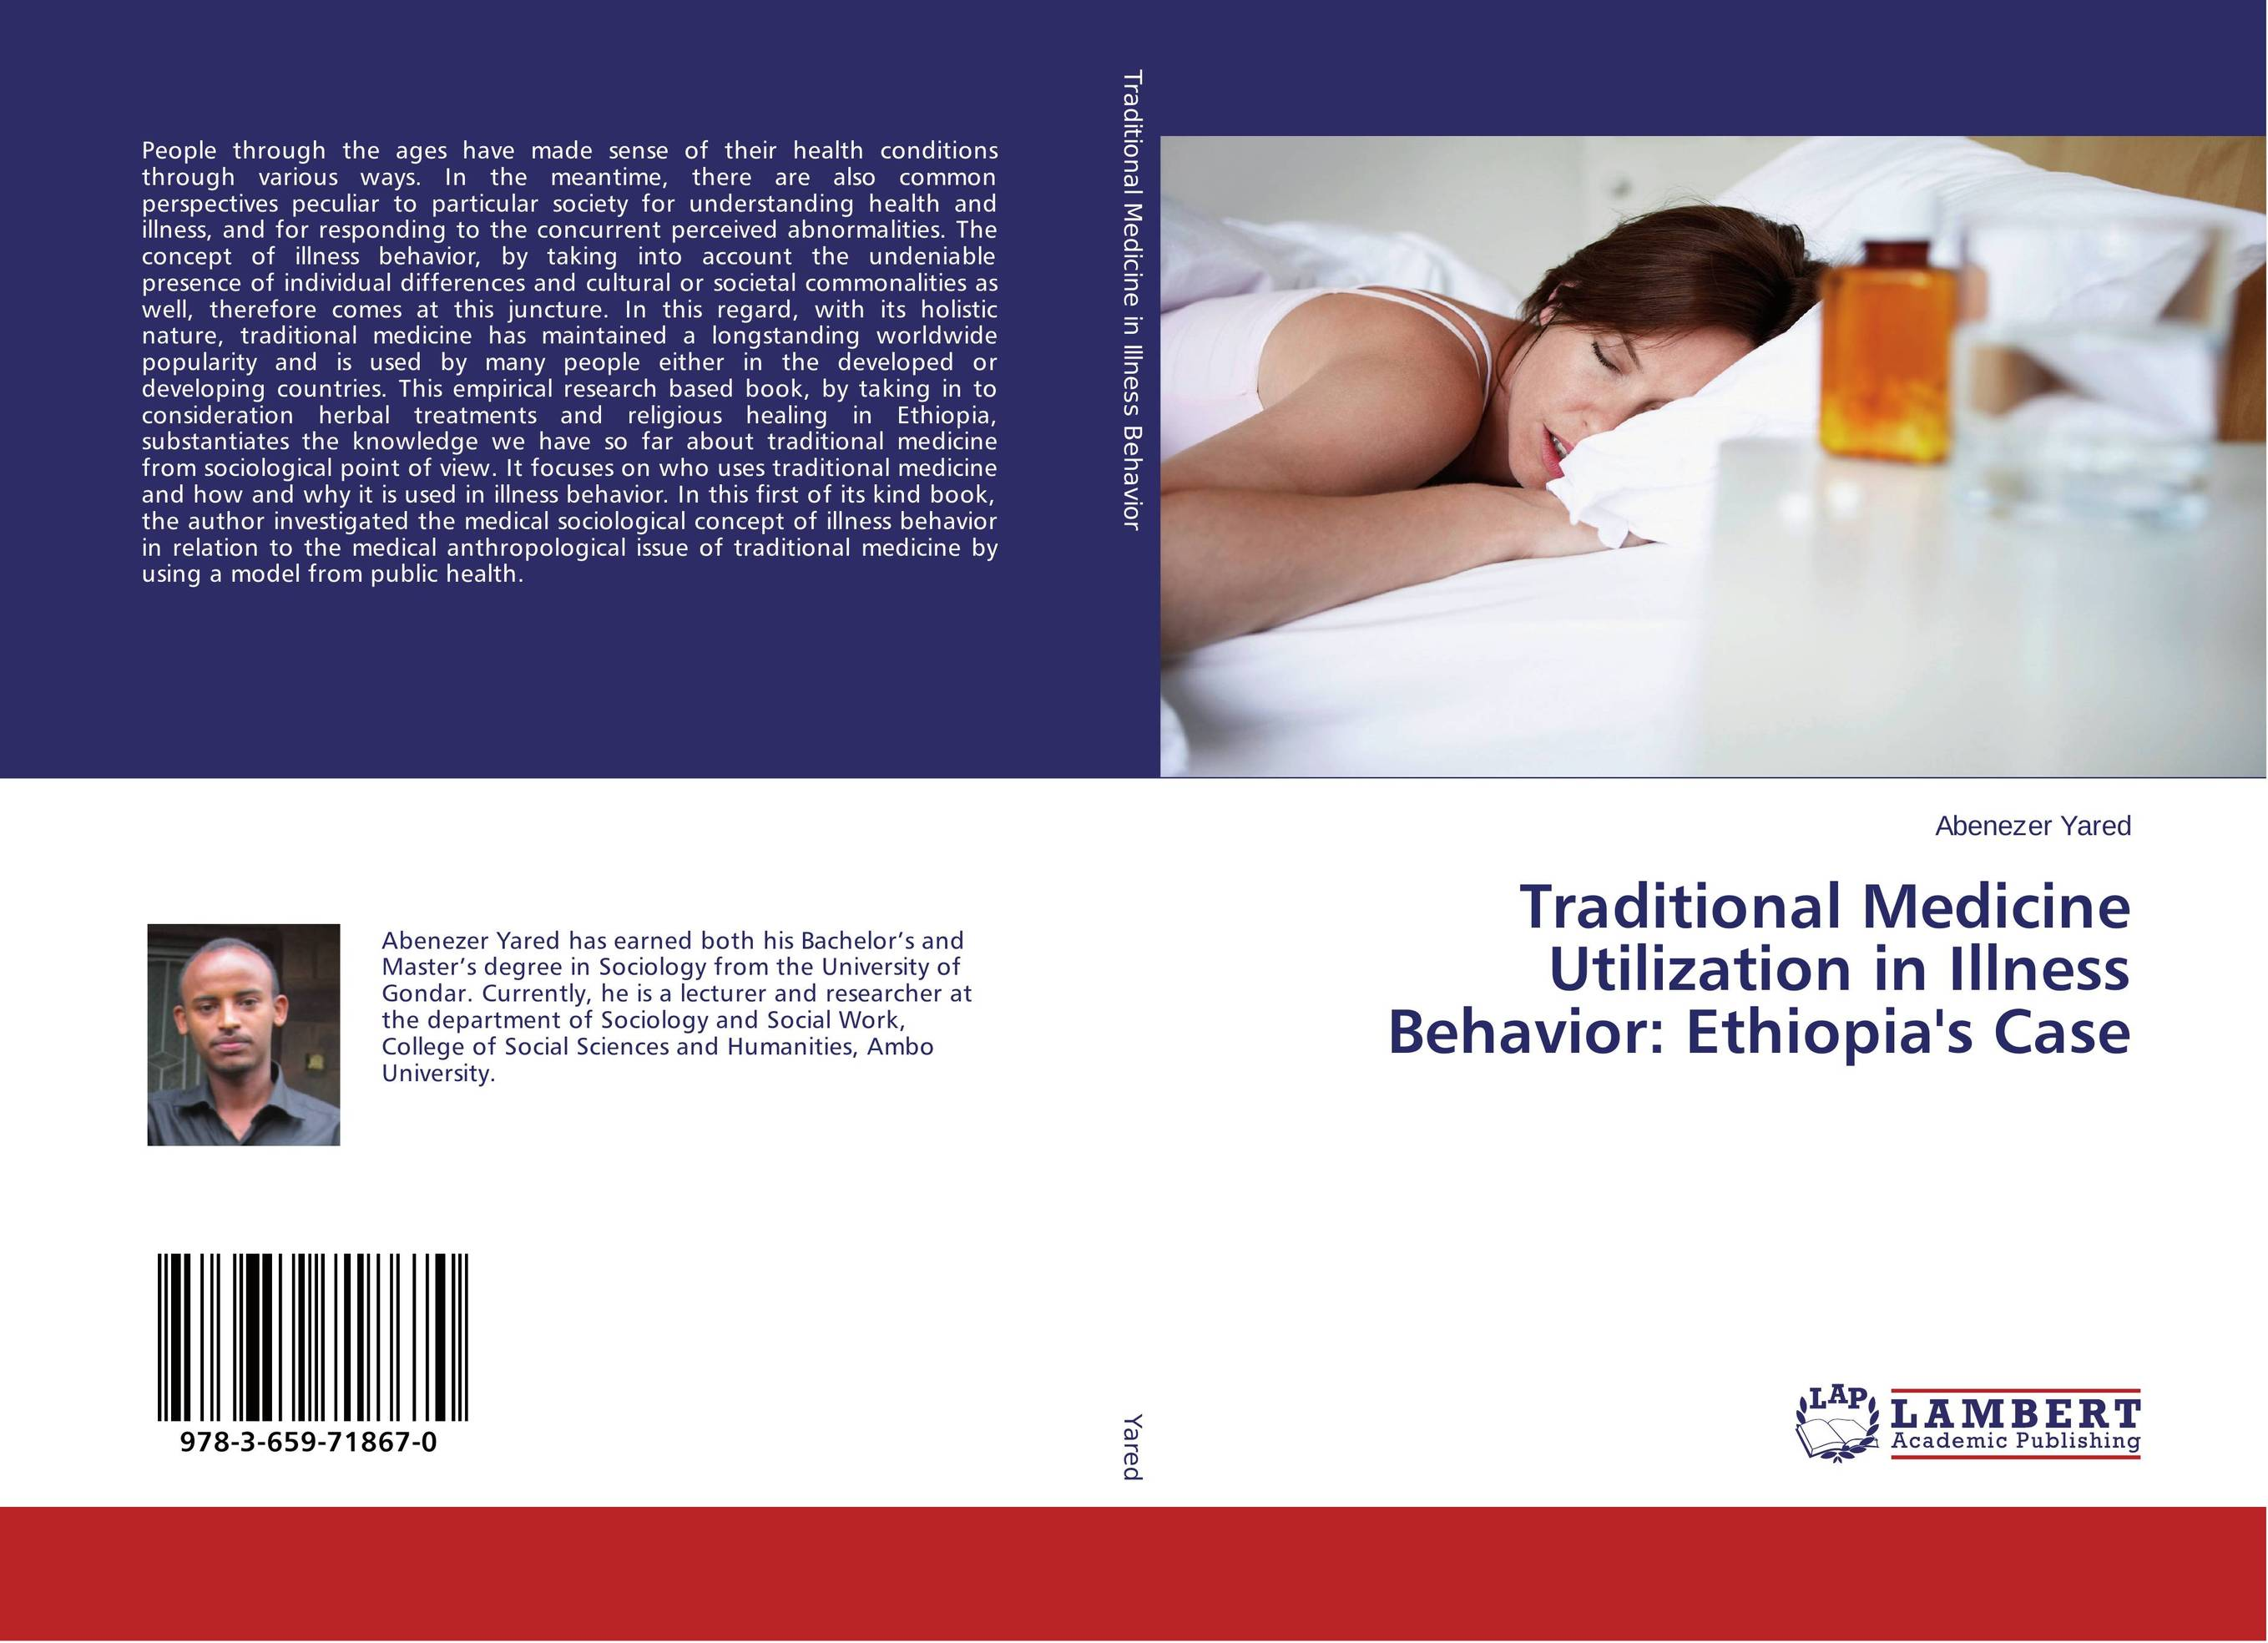 Traditional Medicine Utilization in Illness Behavior: Ethiopia's Case topics of gynecological oncology public health and prose in medicine